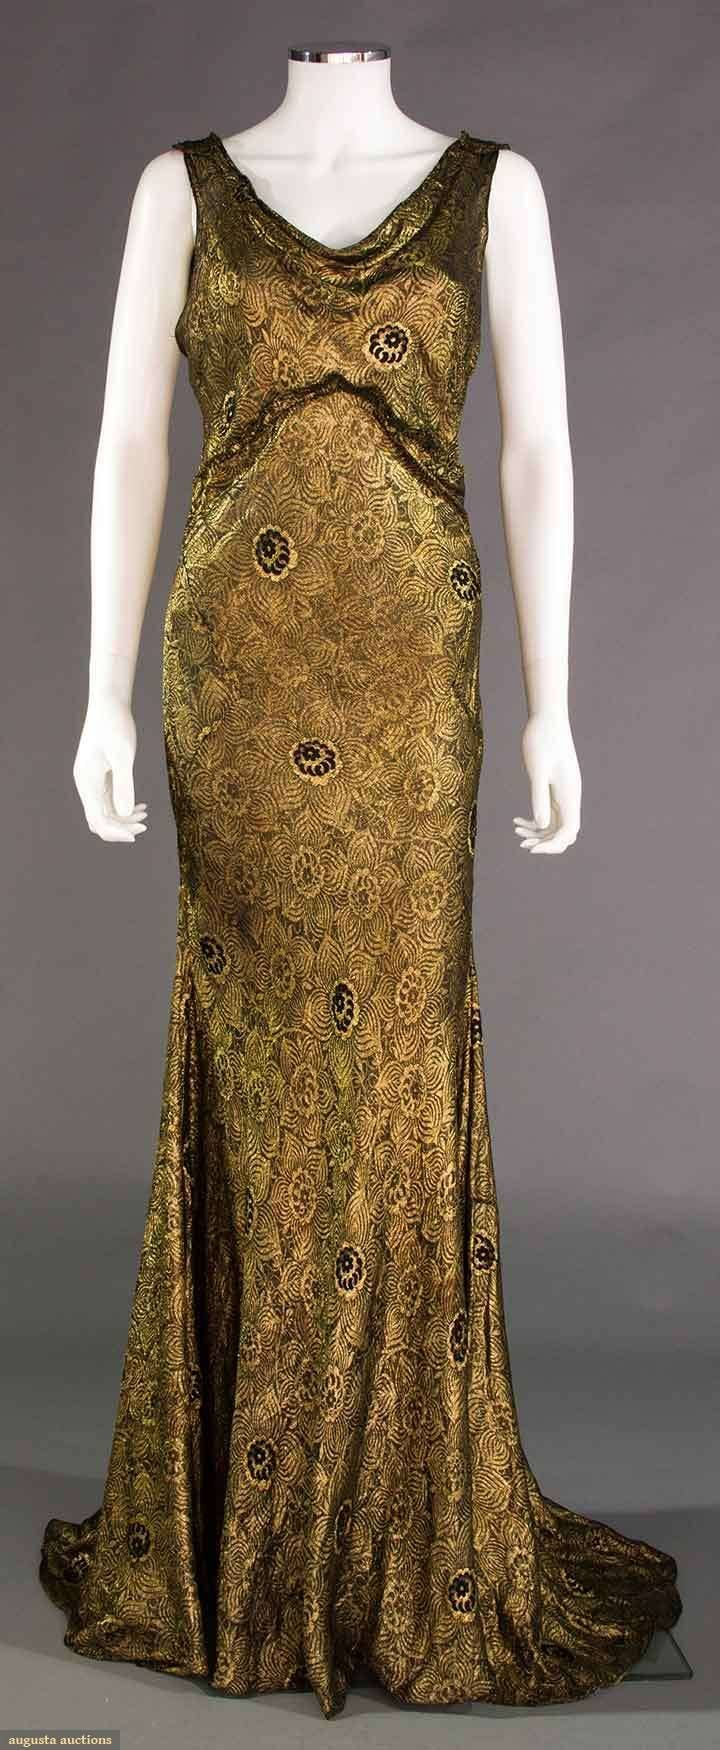 1930s evening gown | Tumblr | 1930s | Pinterest | 1930s, Gowns and ...